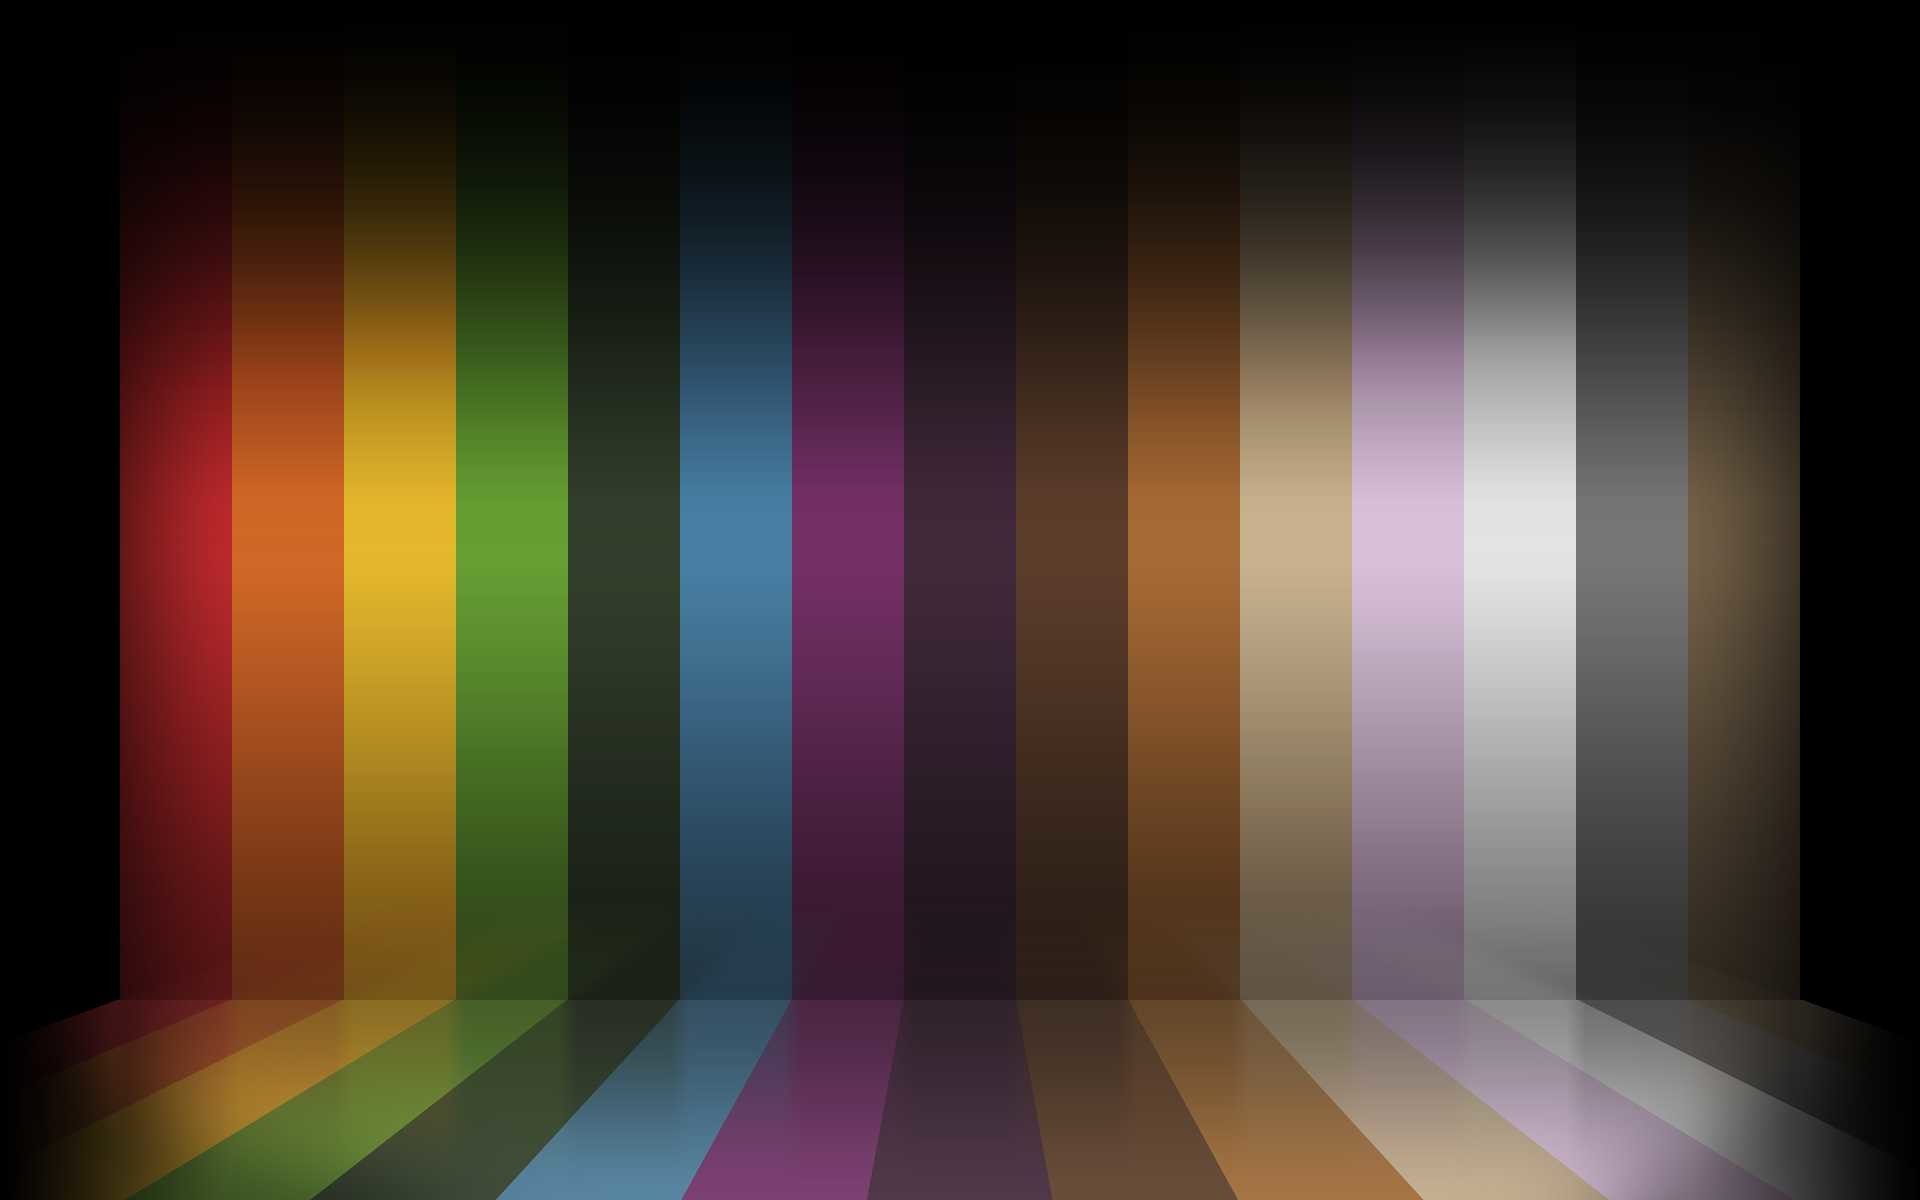 Color Wallpapers PK HQFX Wallpapers For Desktop And Mobile 1920×1200